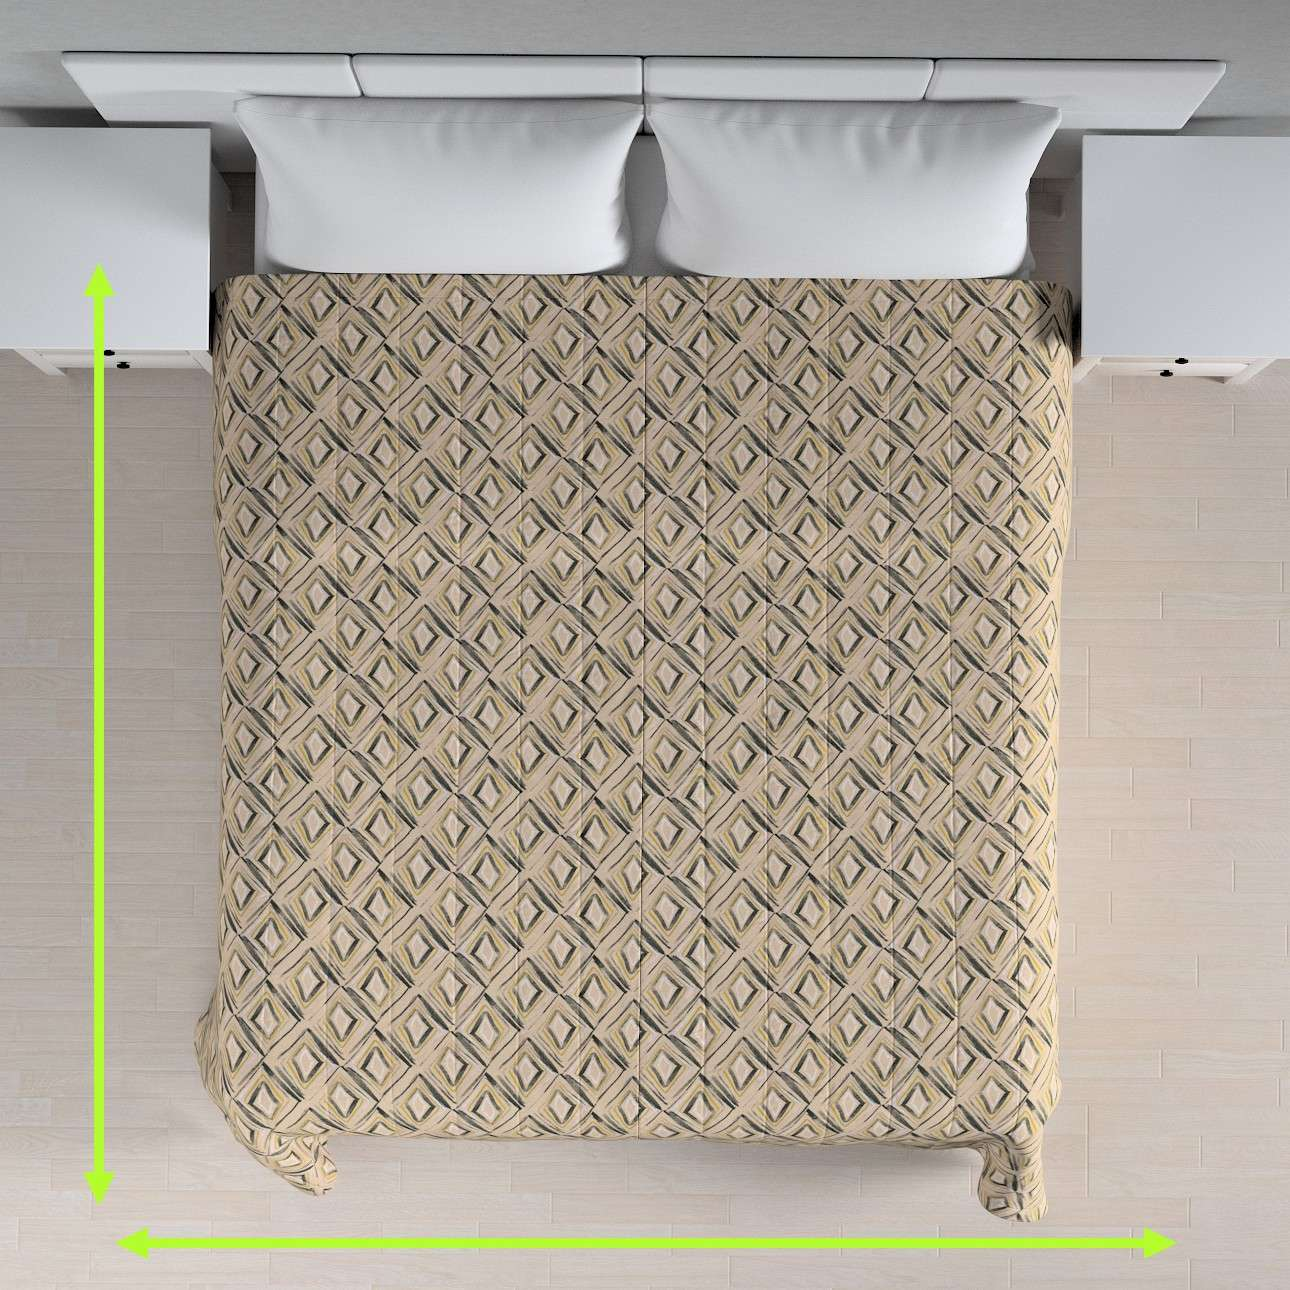 Quilted throw (vertical quilt pattern) in collection Londres, fabric: 140-46